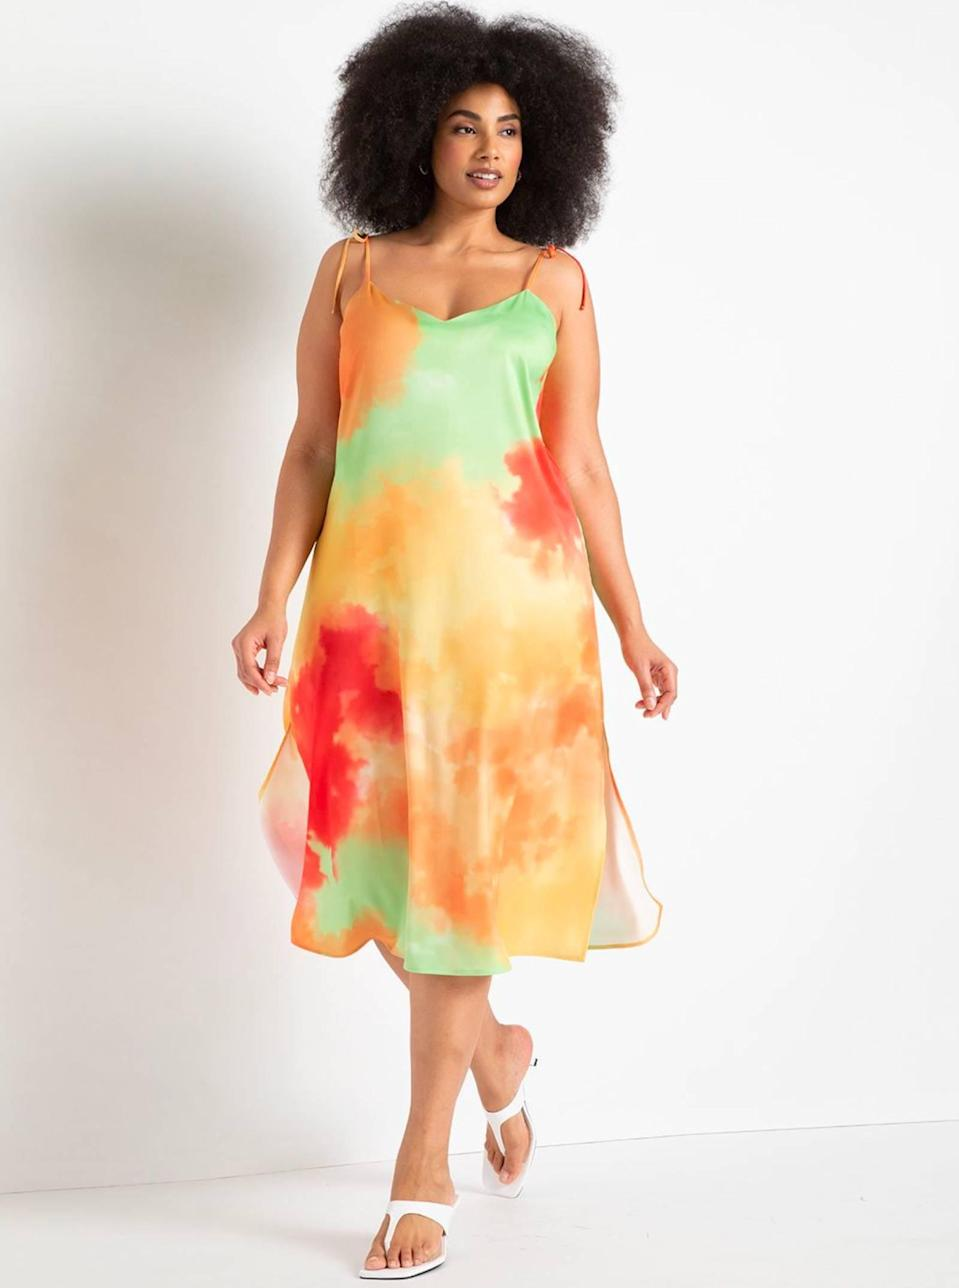 """The bright and painterly hues on this dip-dye dress are so stunning and unique. Dress it up with kitten heels for a summer wedding, then give it some edge with chunky slides and a bucket bag another day. $100, Eloquii. <a href=""""https://www.eloquii.com/dip-dye-slipdress/1227748.html?"""" rel=""""nofollow noopener"""" target=""""_blank"""" data-ylk=""""slk:Get it now!"""" class=""""link rapid-noclick-resp"""">Get it now!</a>"""